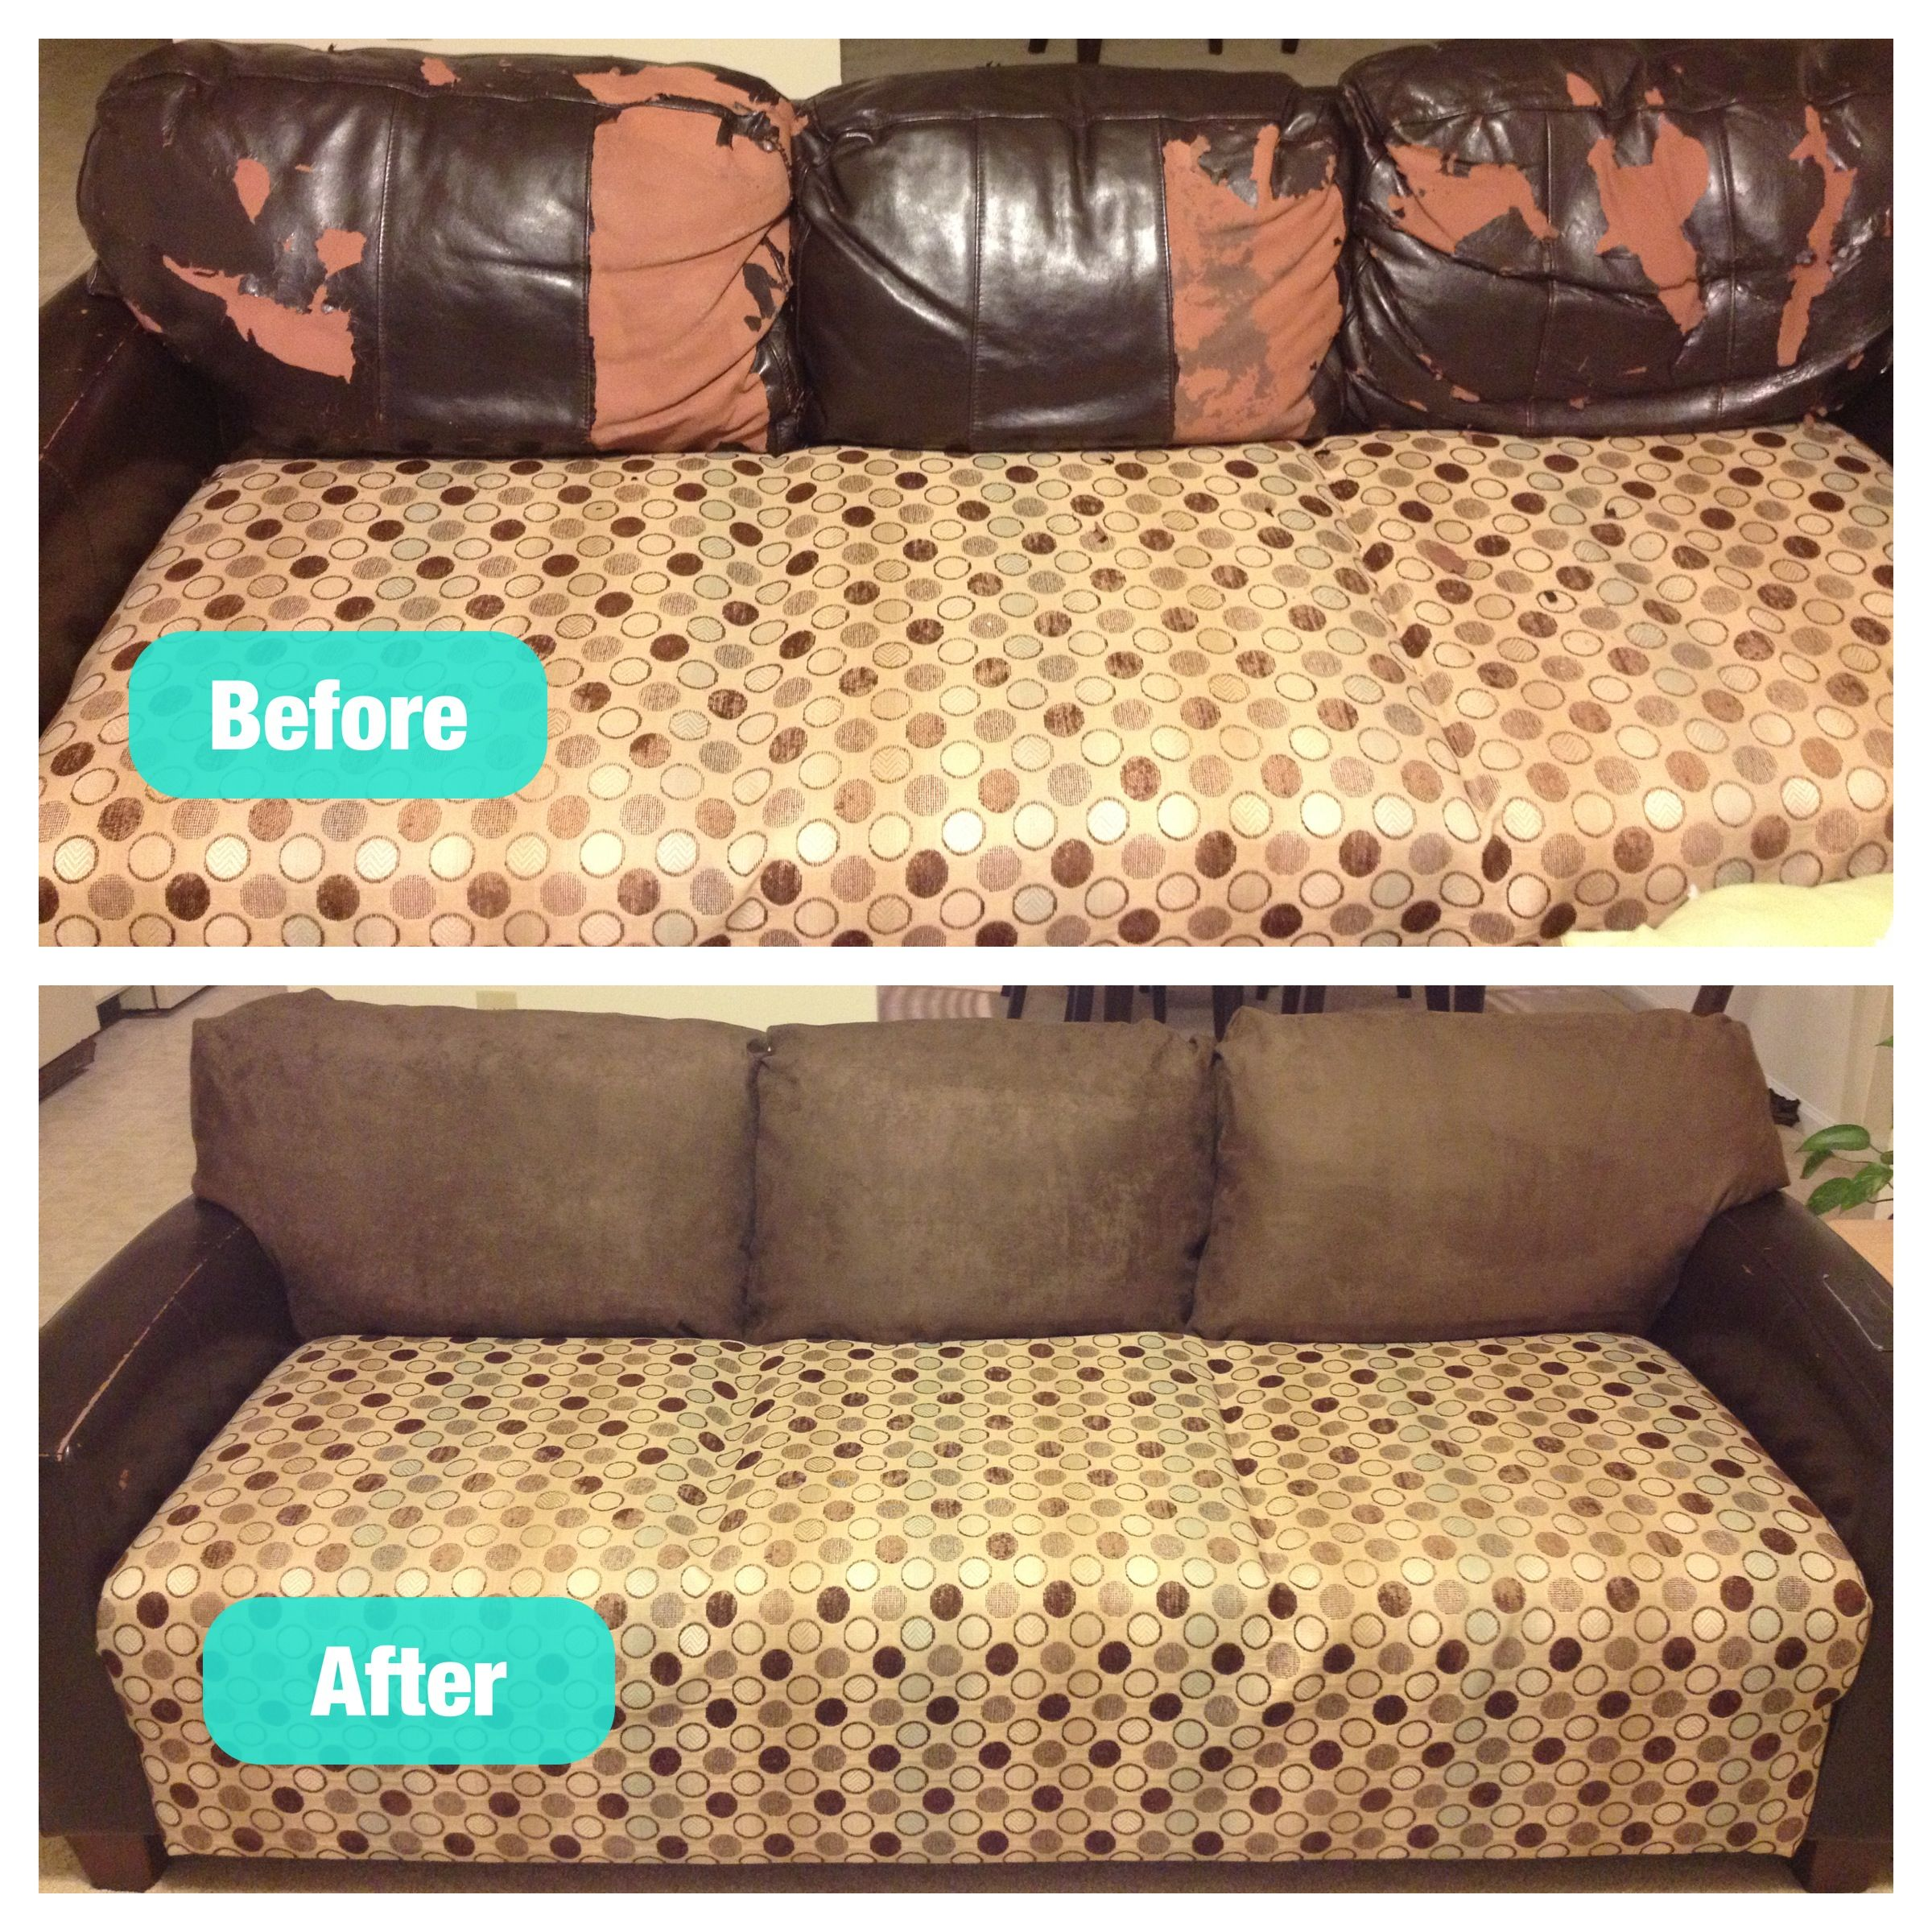 Fixed my peeling leather couch cushions for under $60 Not bad for